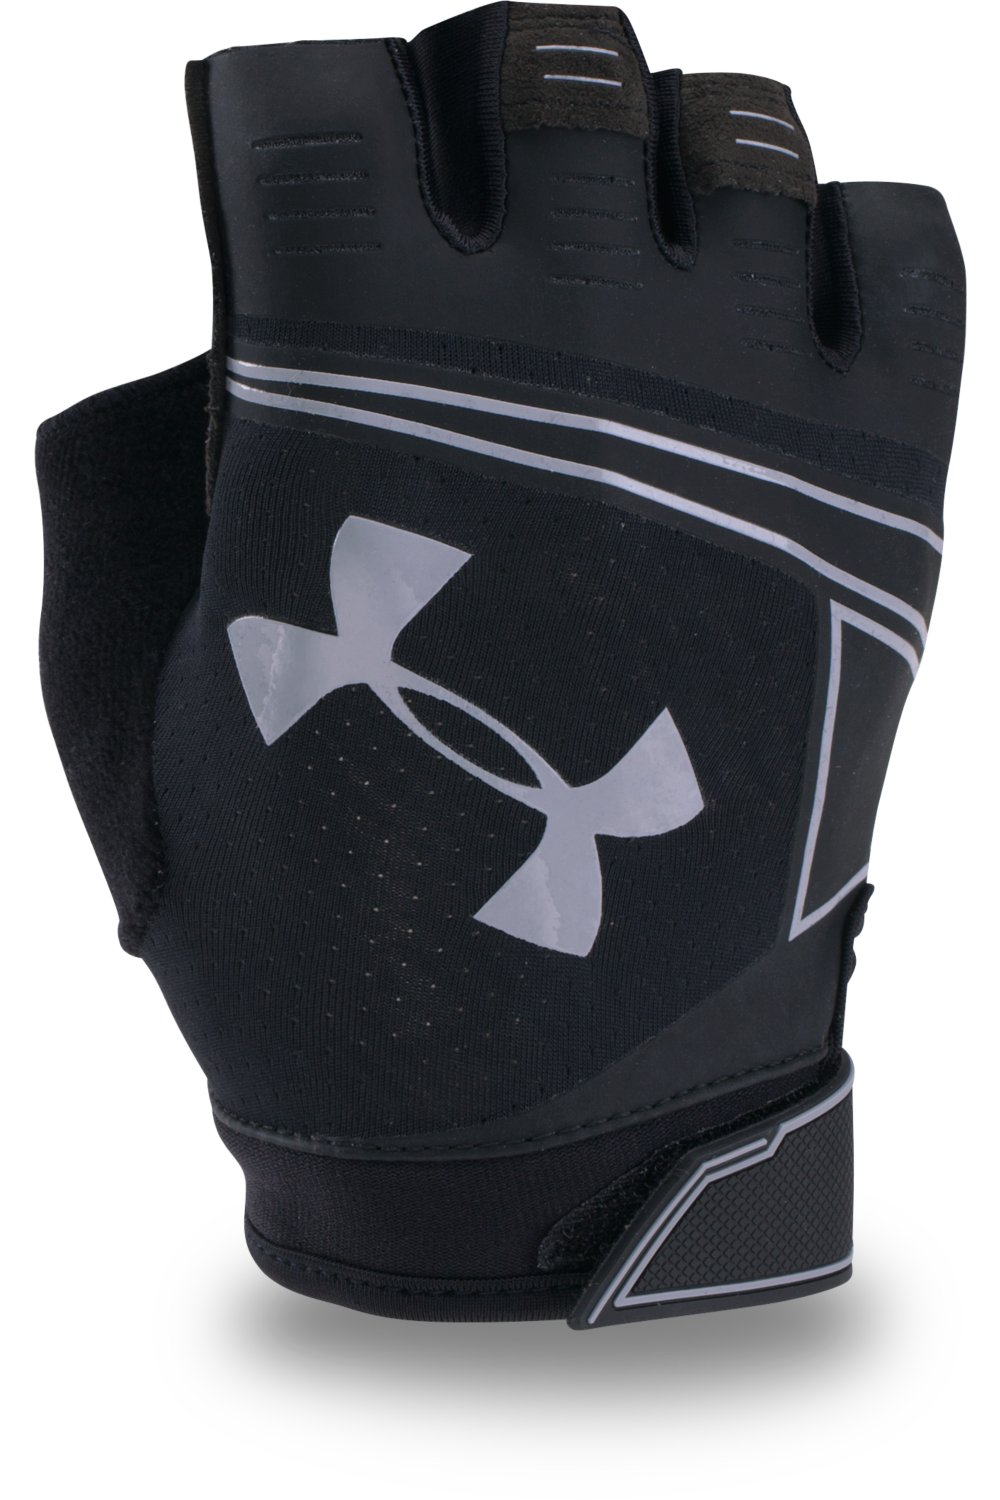 Under Armour manusi negre sport de bărbați Coolswitch Flux